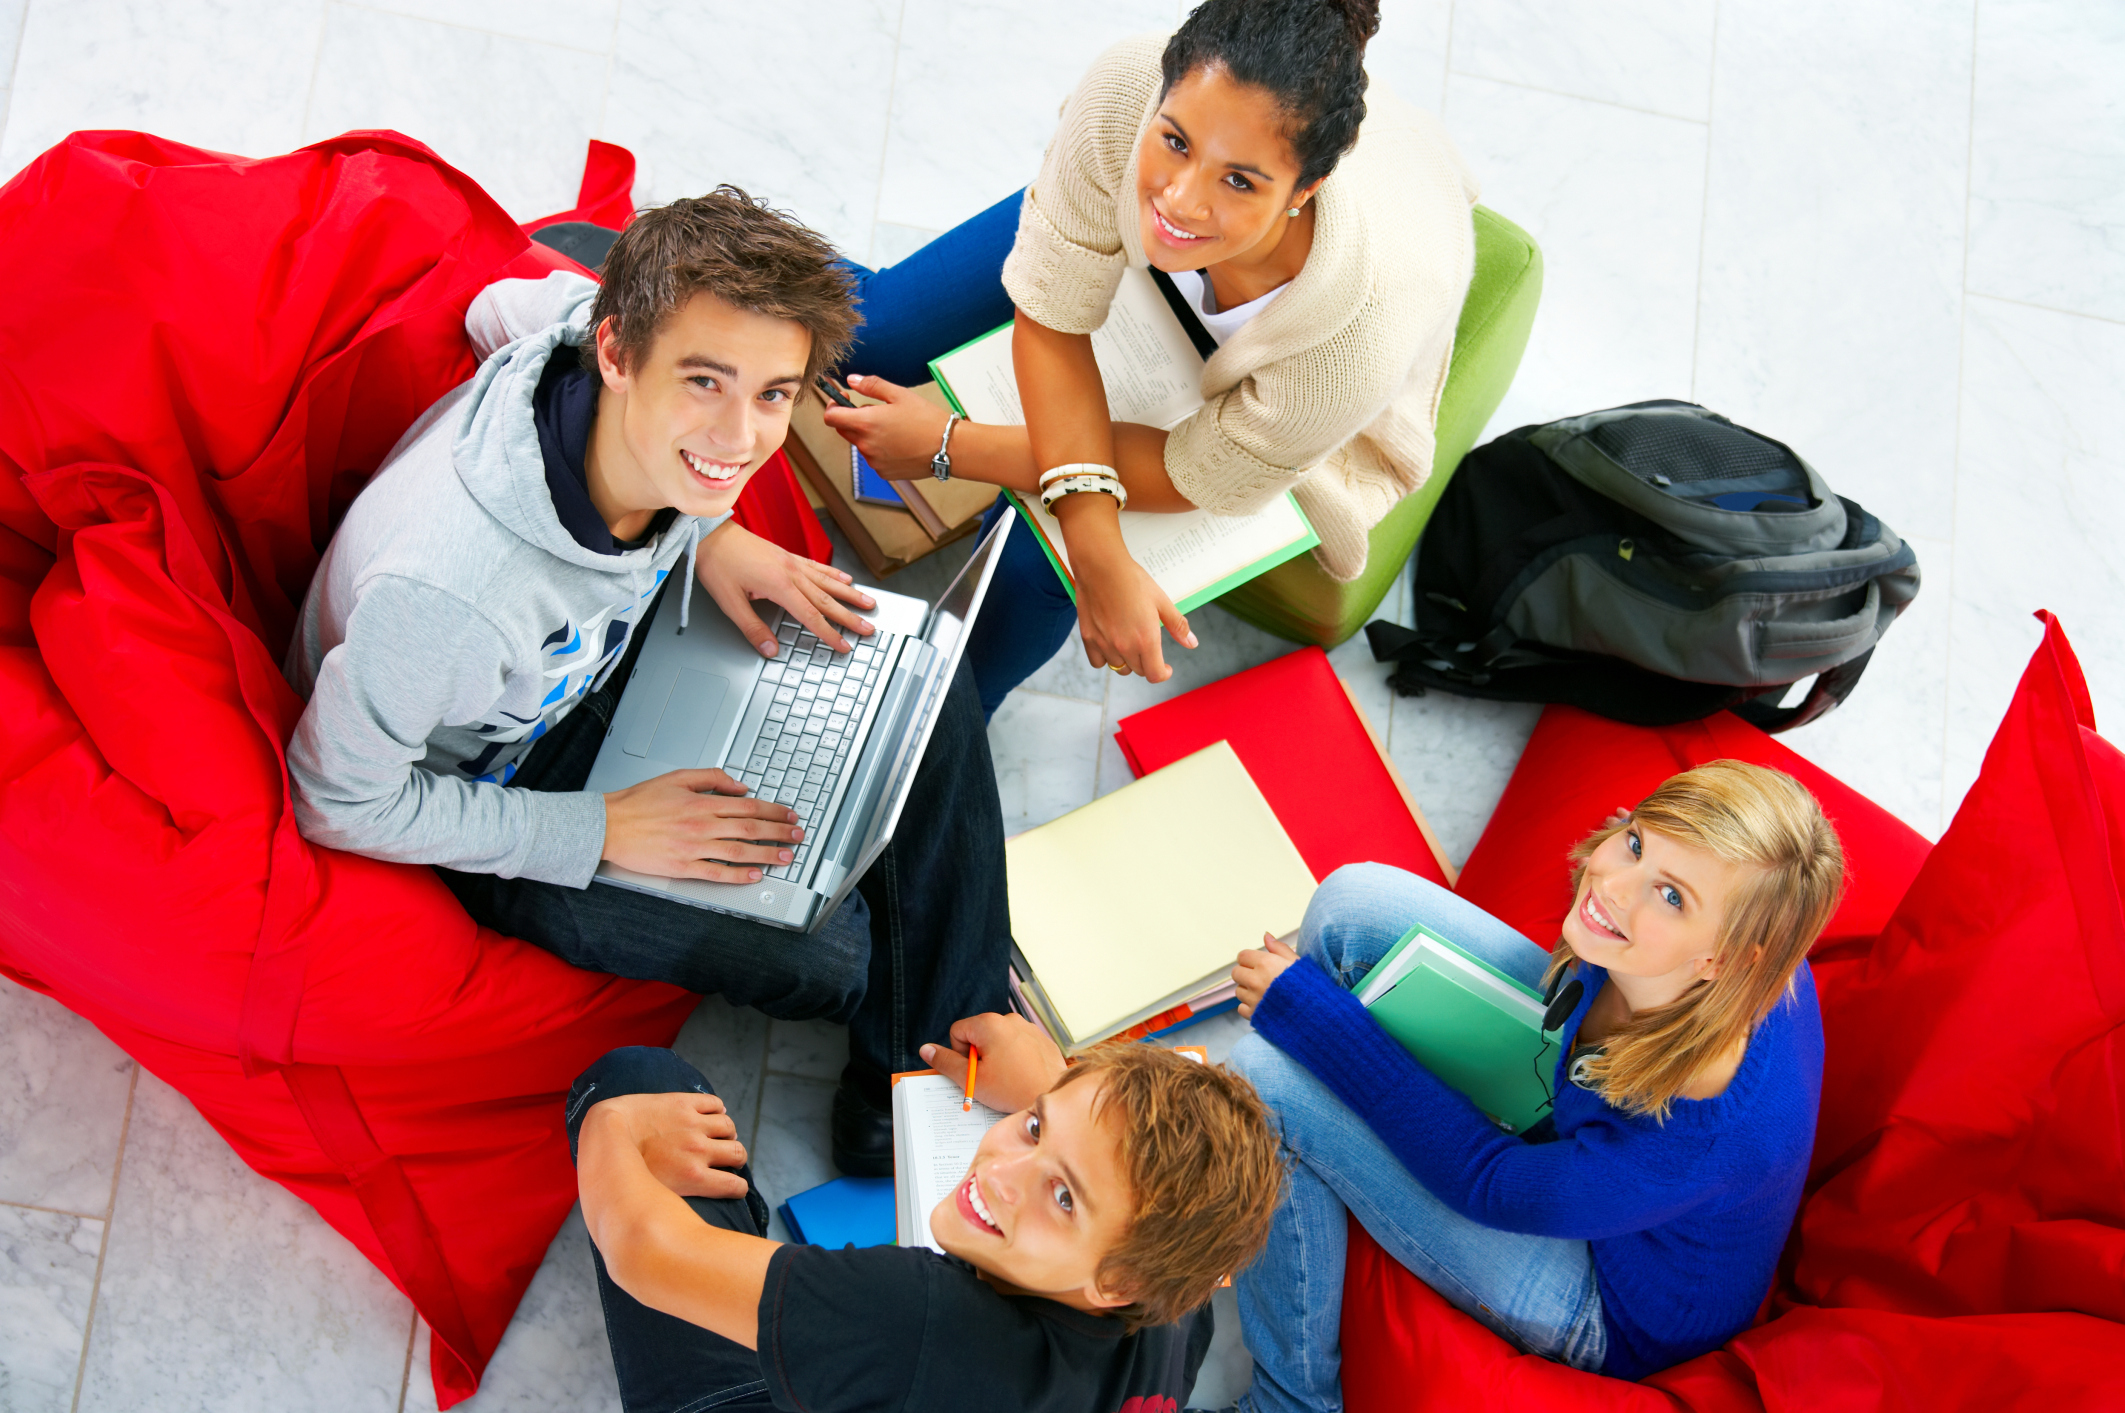 High angle view of students sitting together